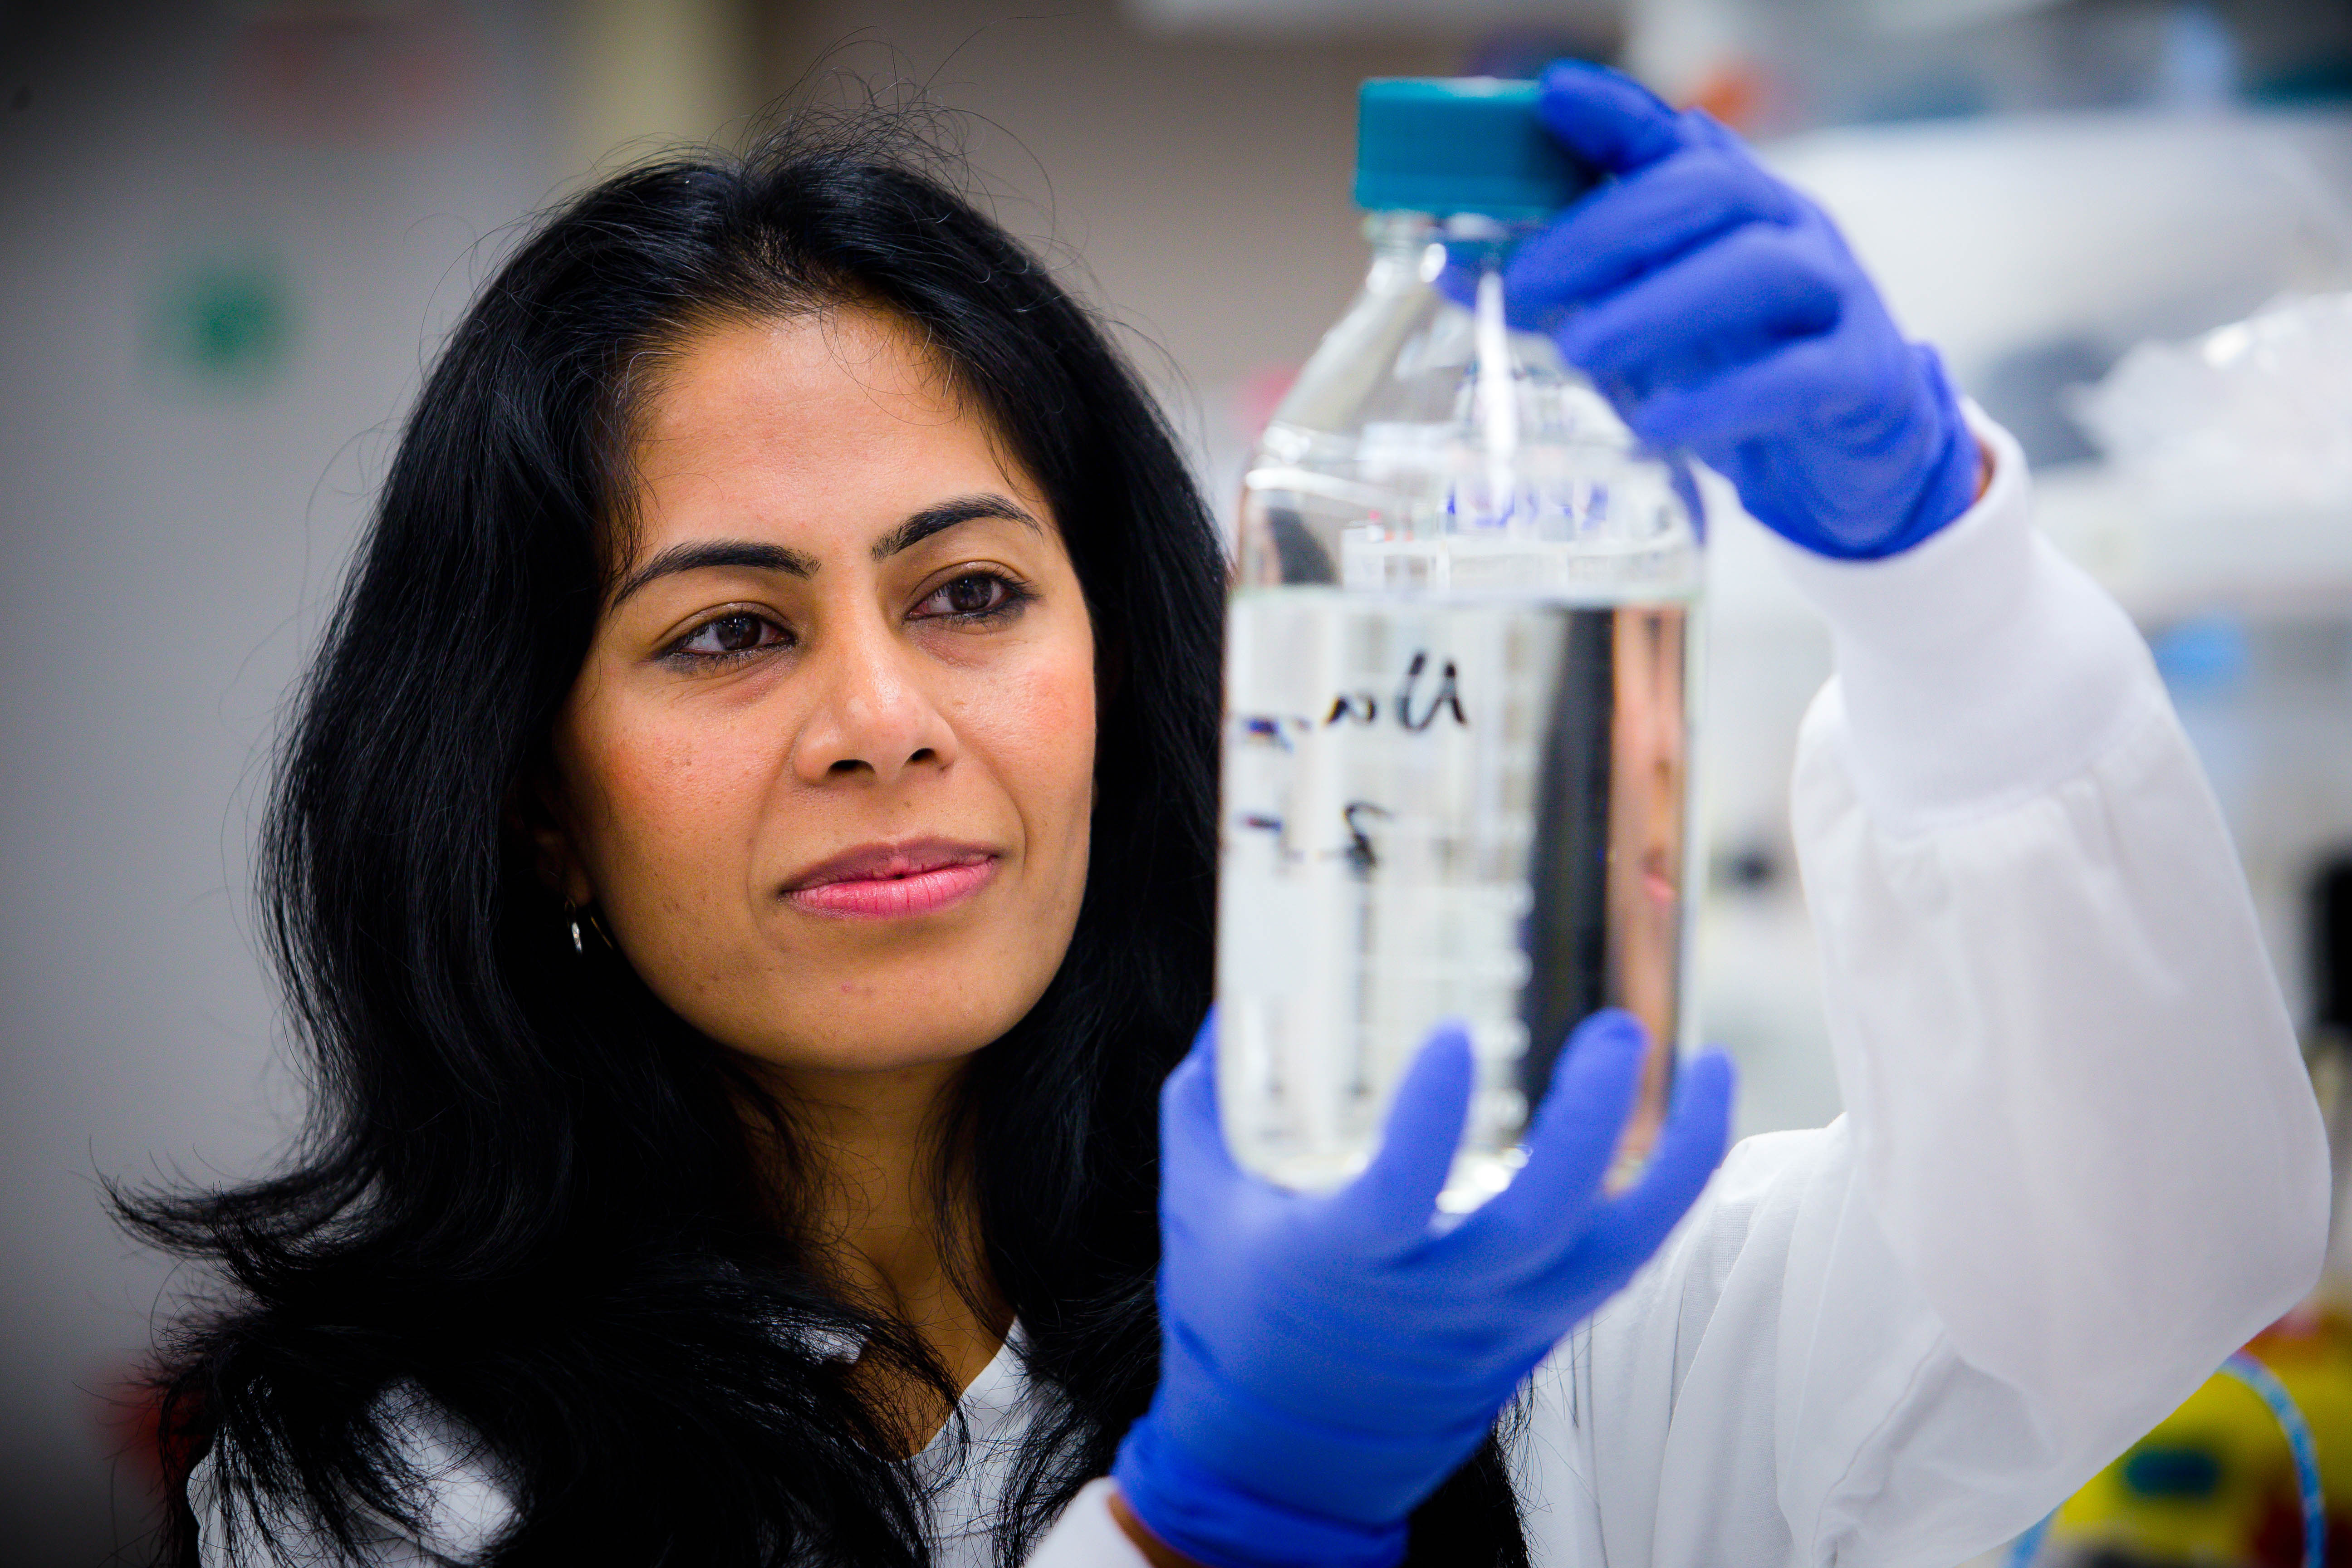 In Breakthrough Researchers Detect >> Research Grants Awarded To Help Find The Next Cancer Breakthrough